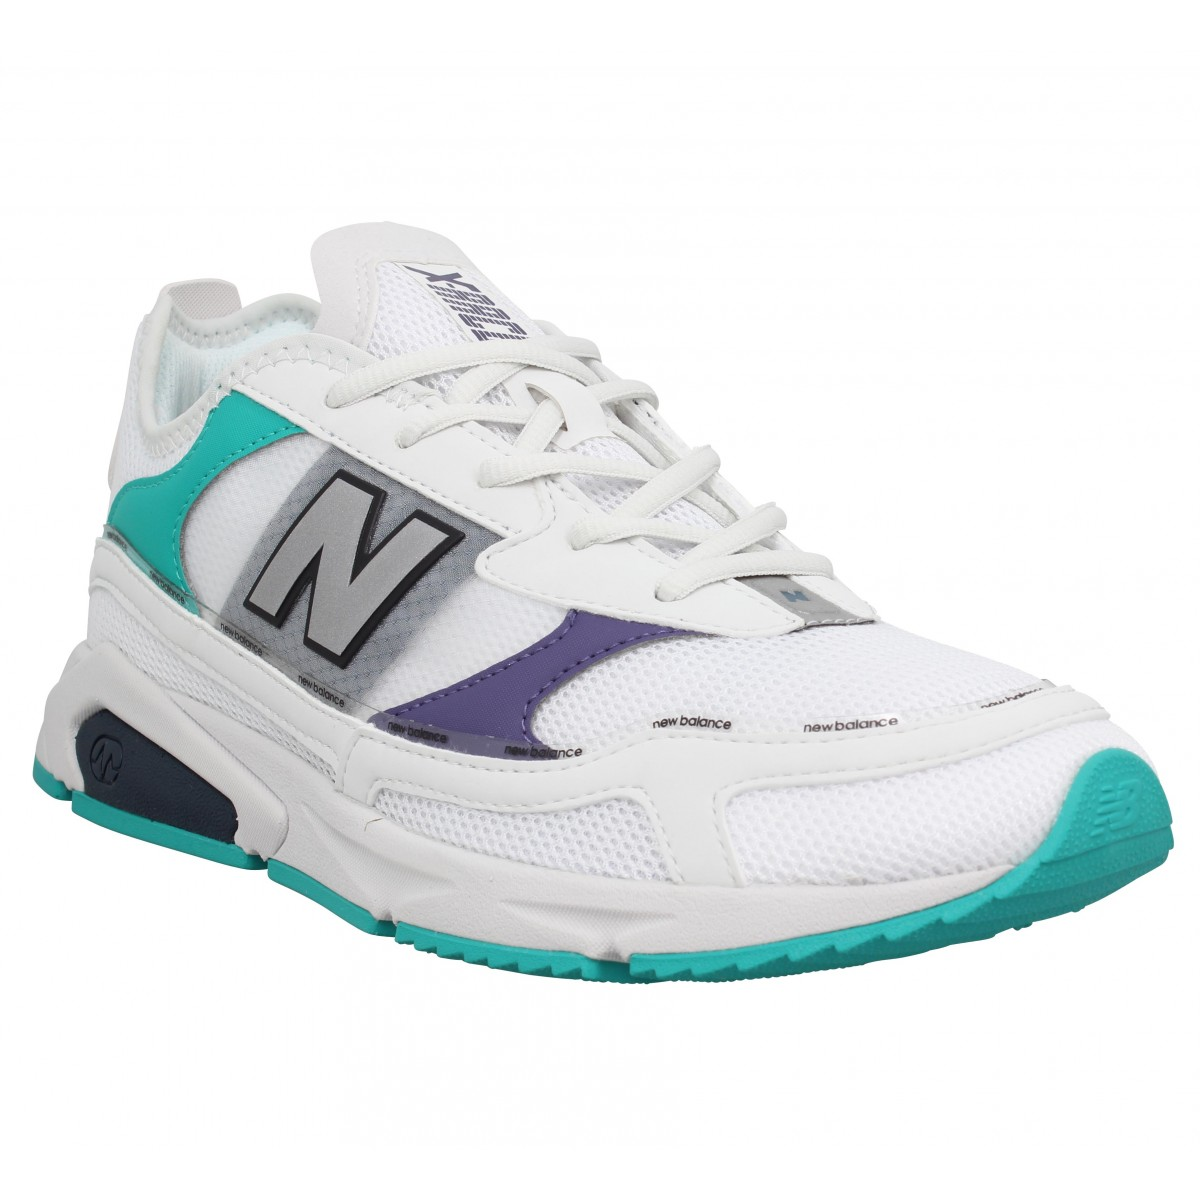 New Balance Homme Msx Rc Toile...